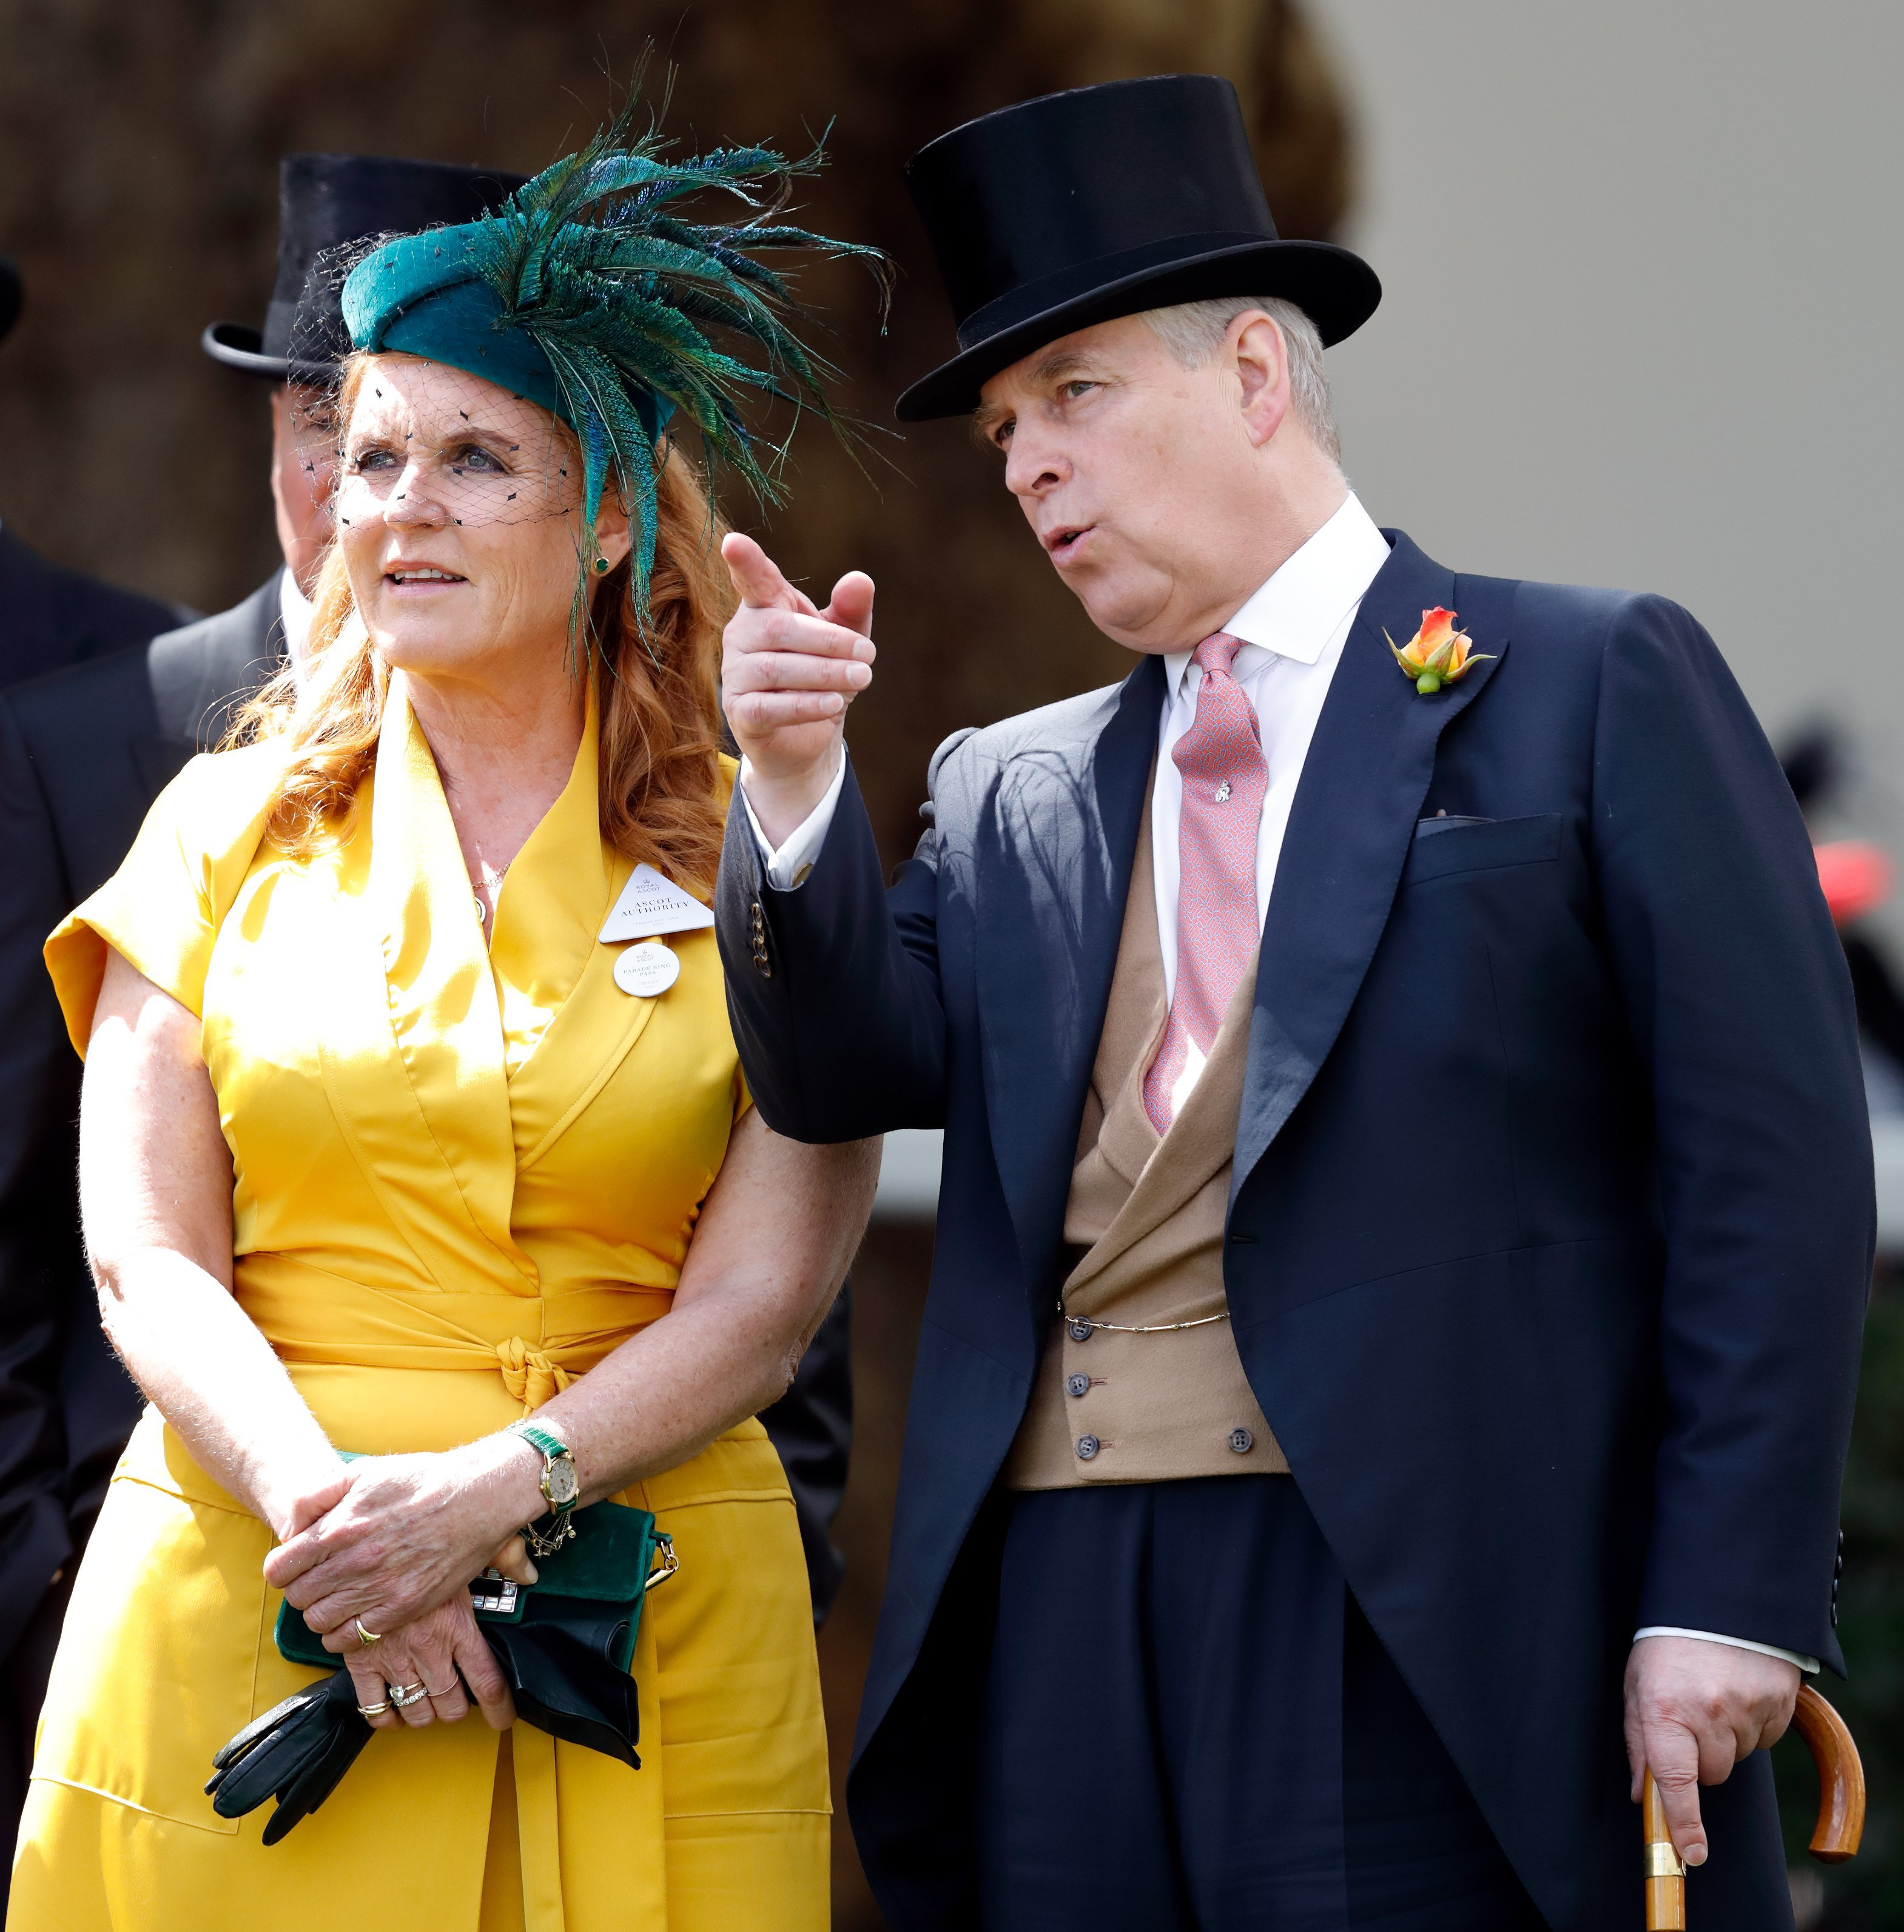 Sarah Ferguson, Duchess of York and Prince Andrew, Duke of York attend day four of Royal Ascot at Ascot Racecourse | Photo: Getty Images